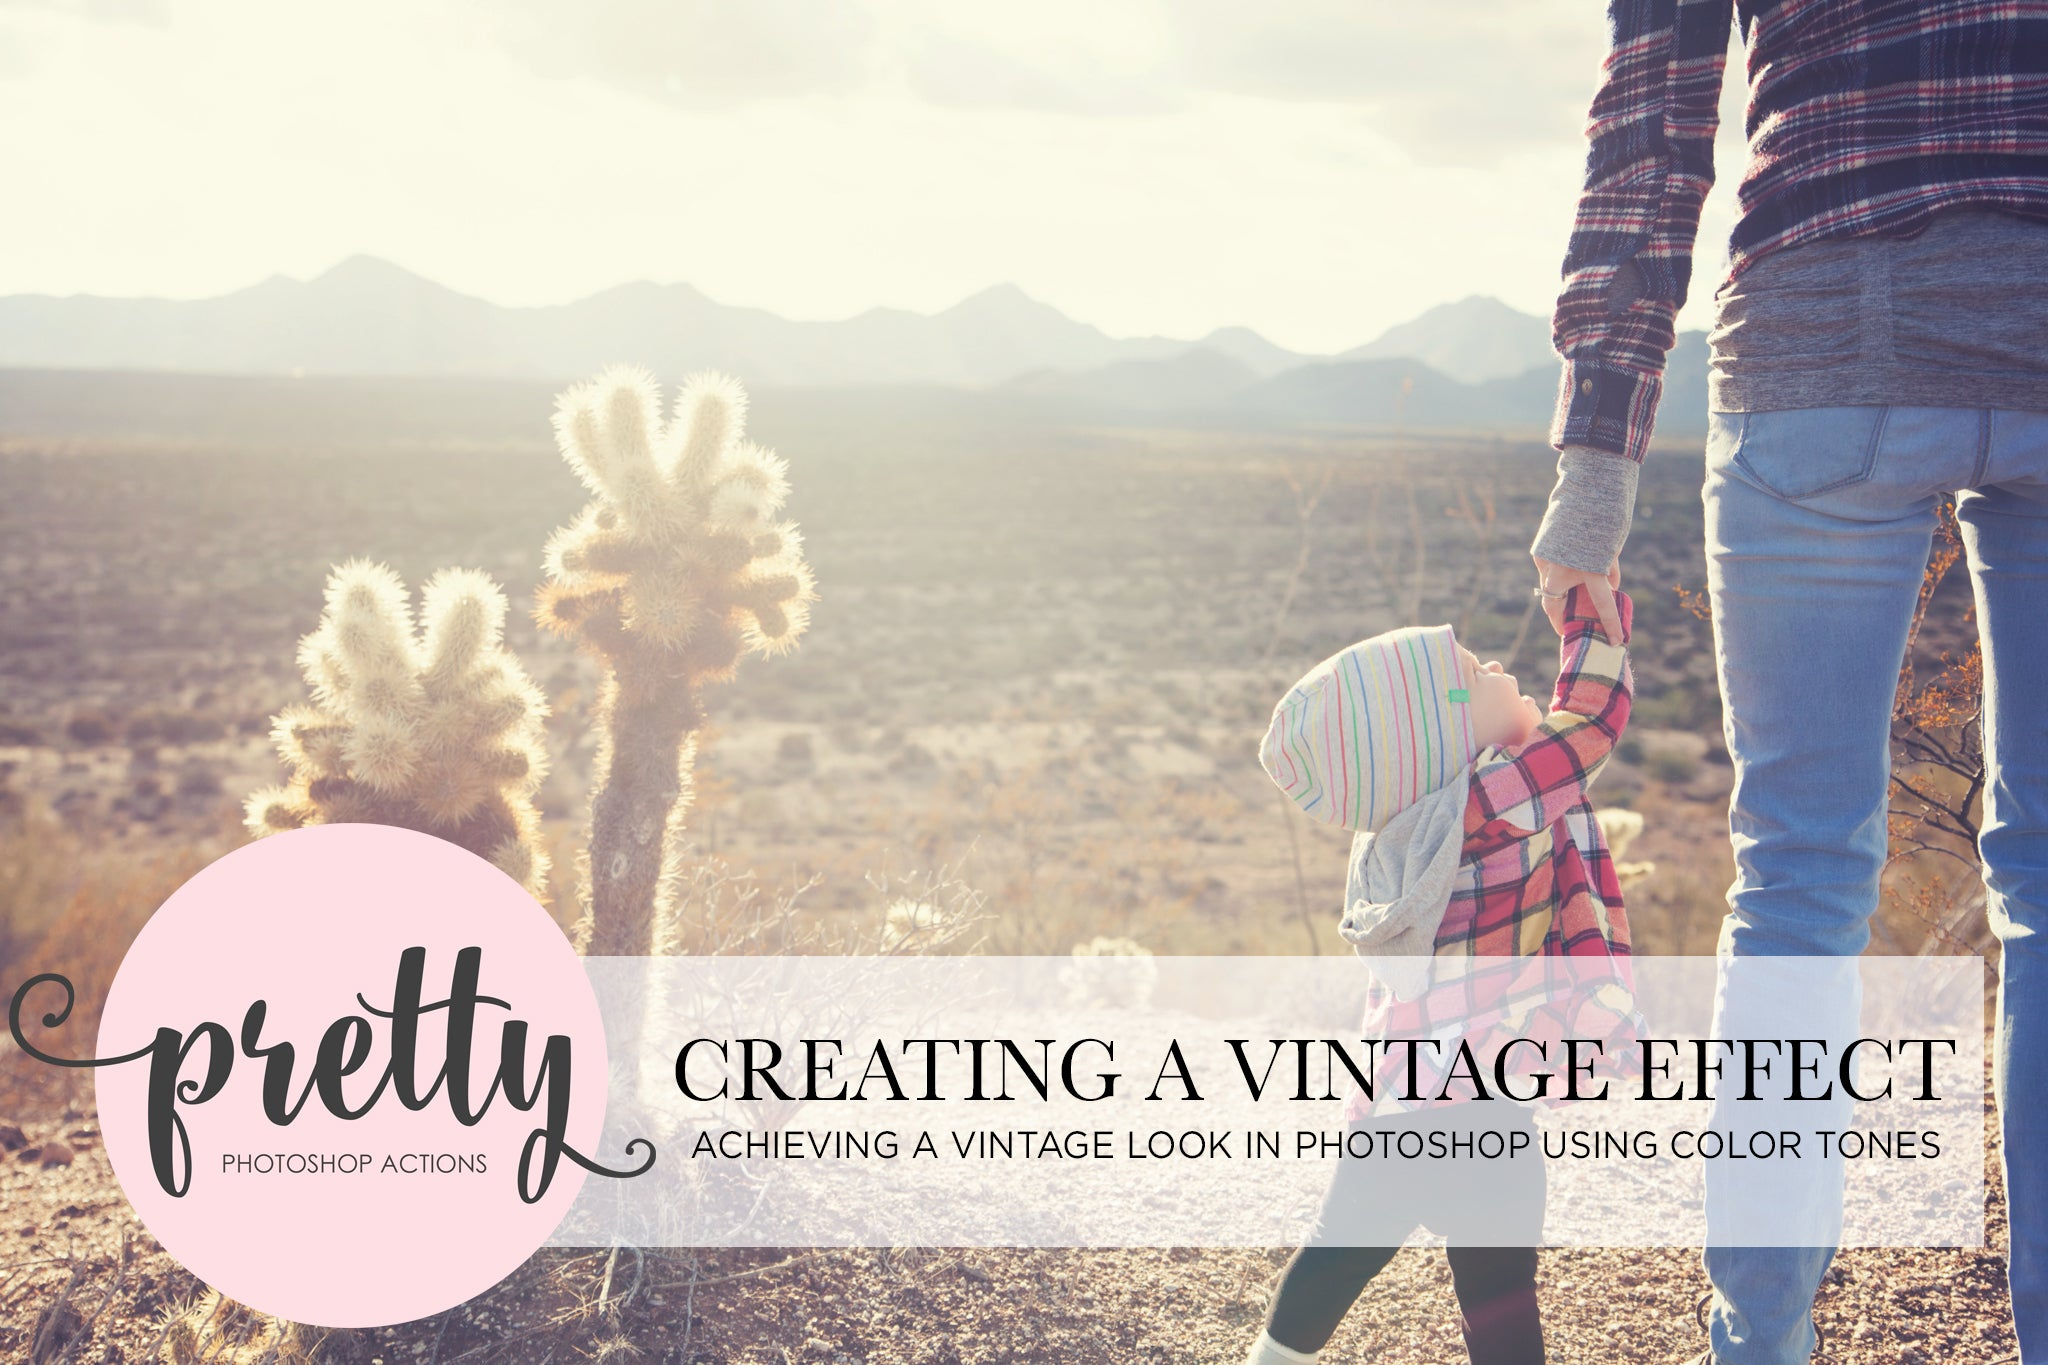 Vintage Photo Effect in Photoshop - Pretty Actions Tutorial